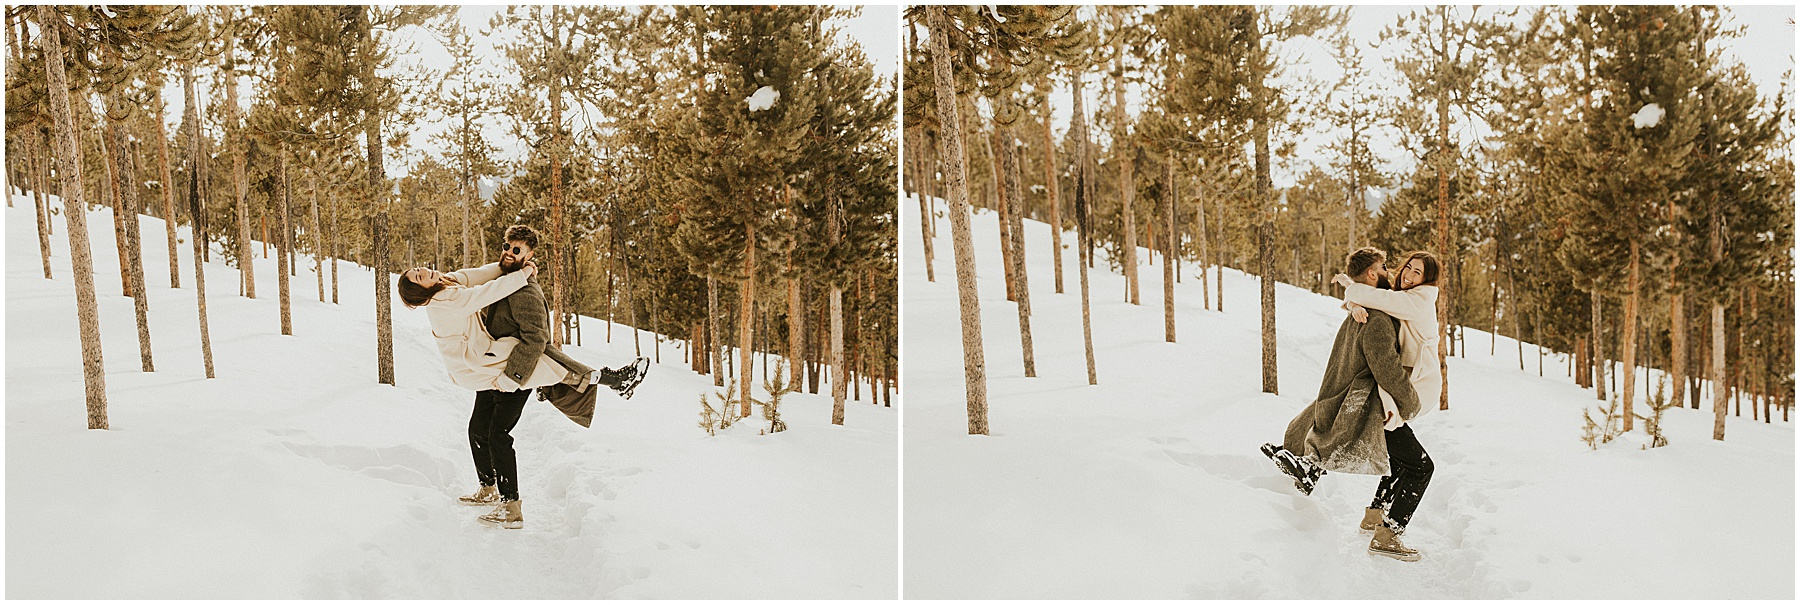 Proposal and engagement session in Breckenridge, Colorado Saphire Point_0367.jpg